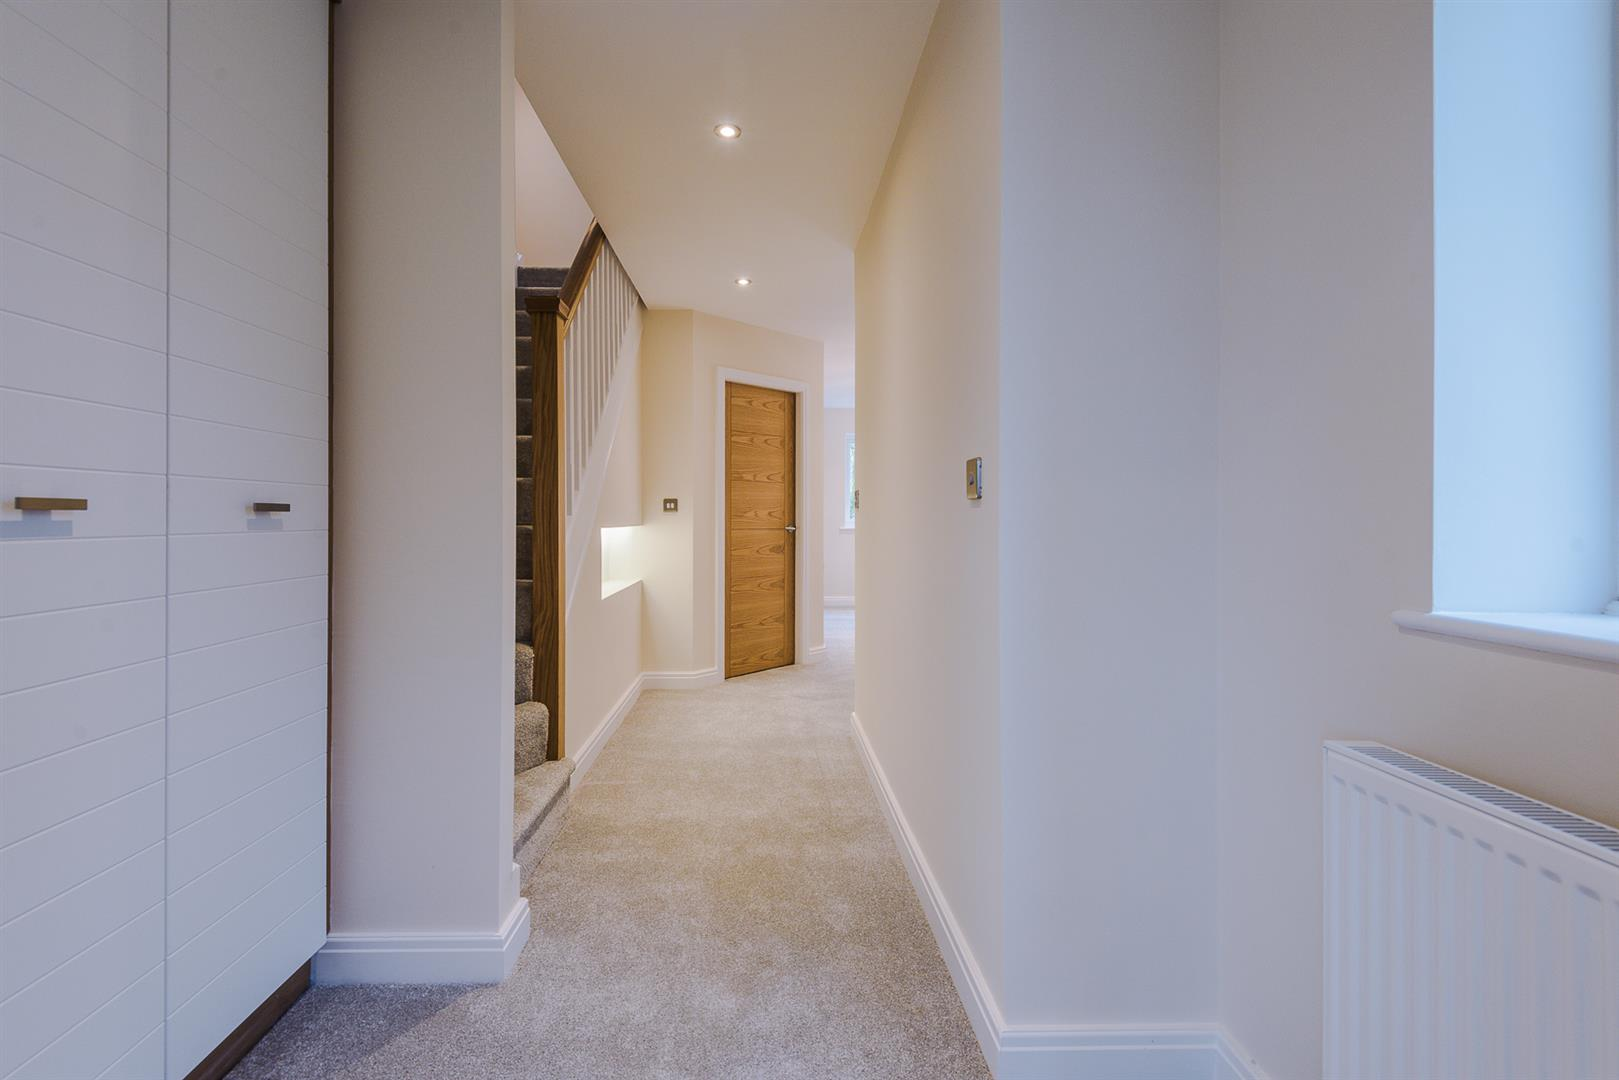 5 Bedroom House For Sale Image 38